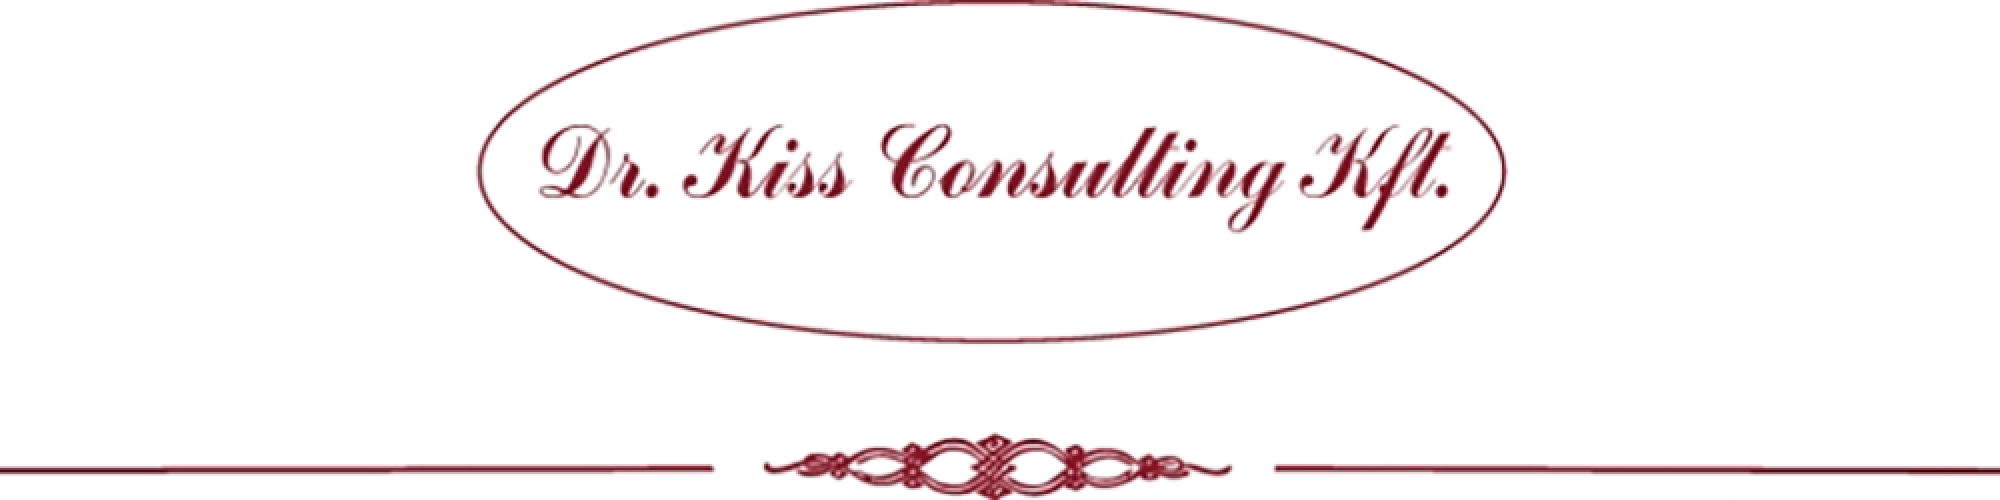 Dr. Kiss Consulting Kft.